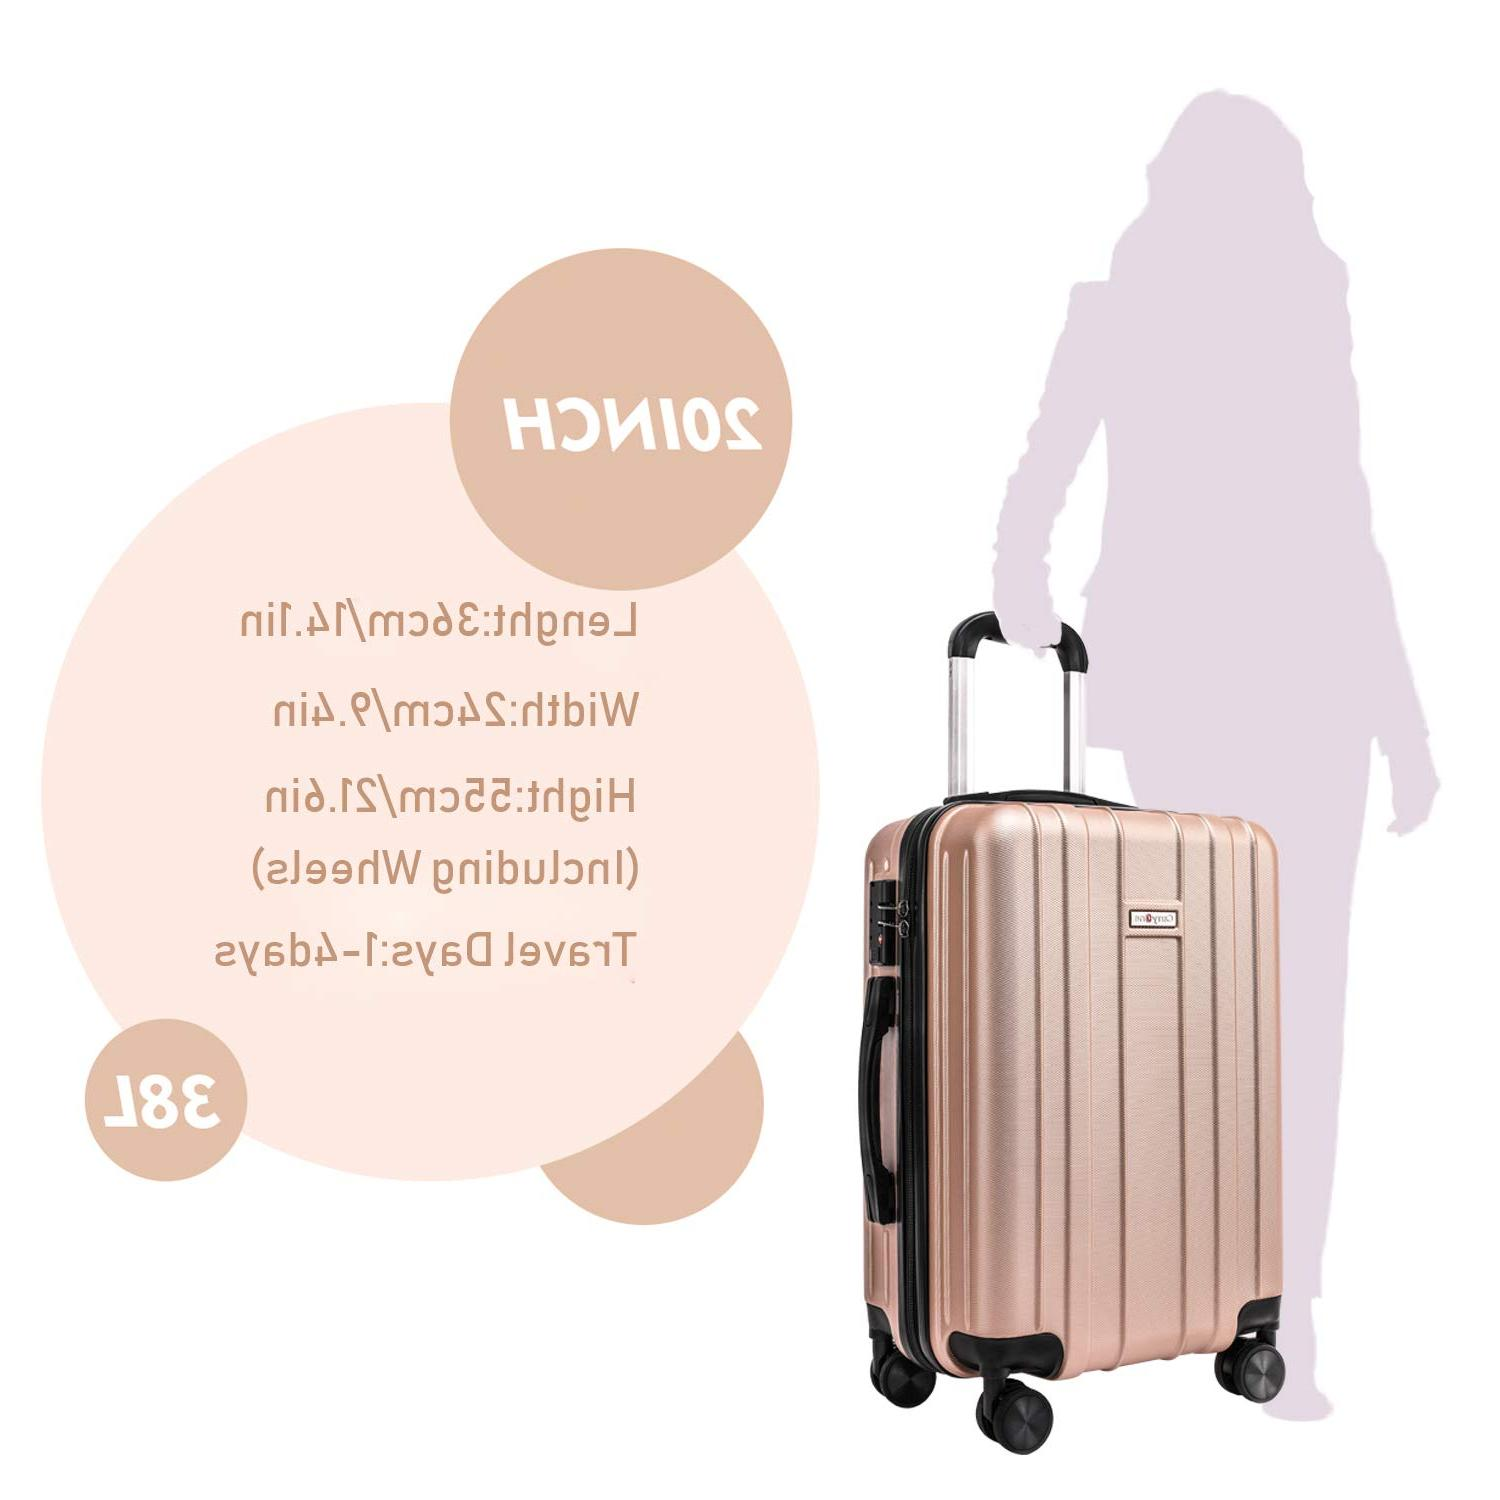 CarryOne 20in Carry on Luggage Suitcase, Built-in Lock, Spinner Wheels,